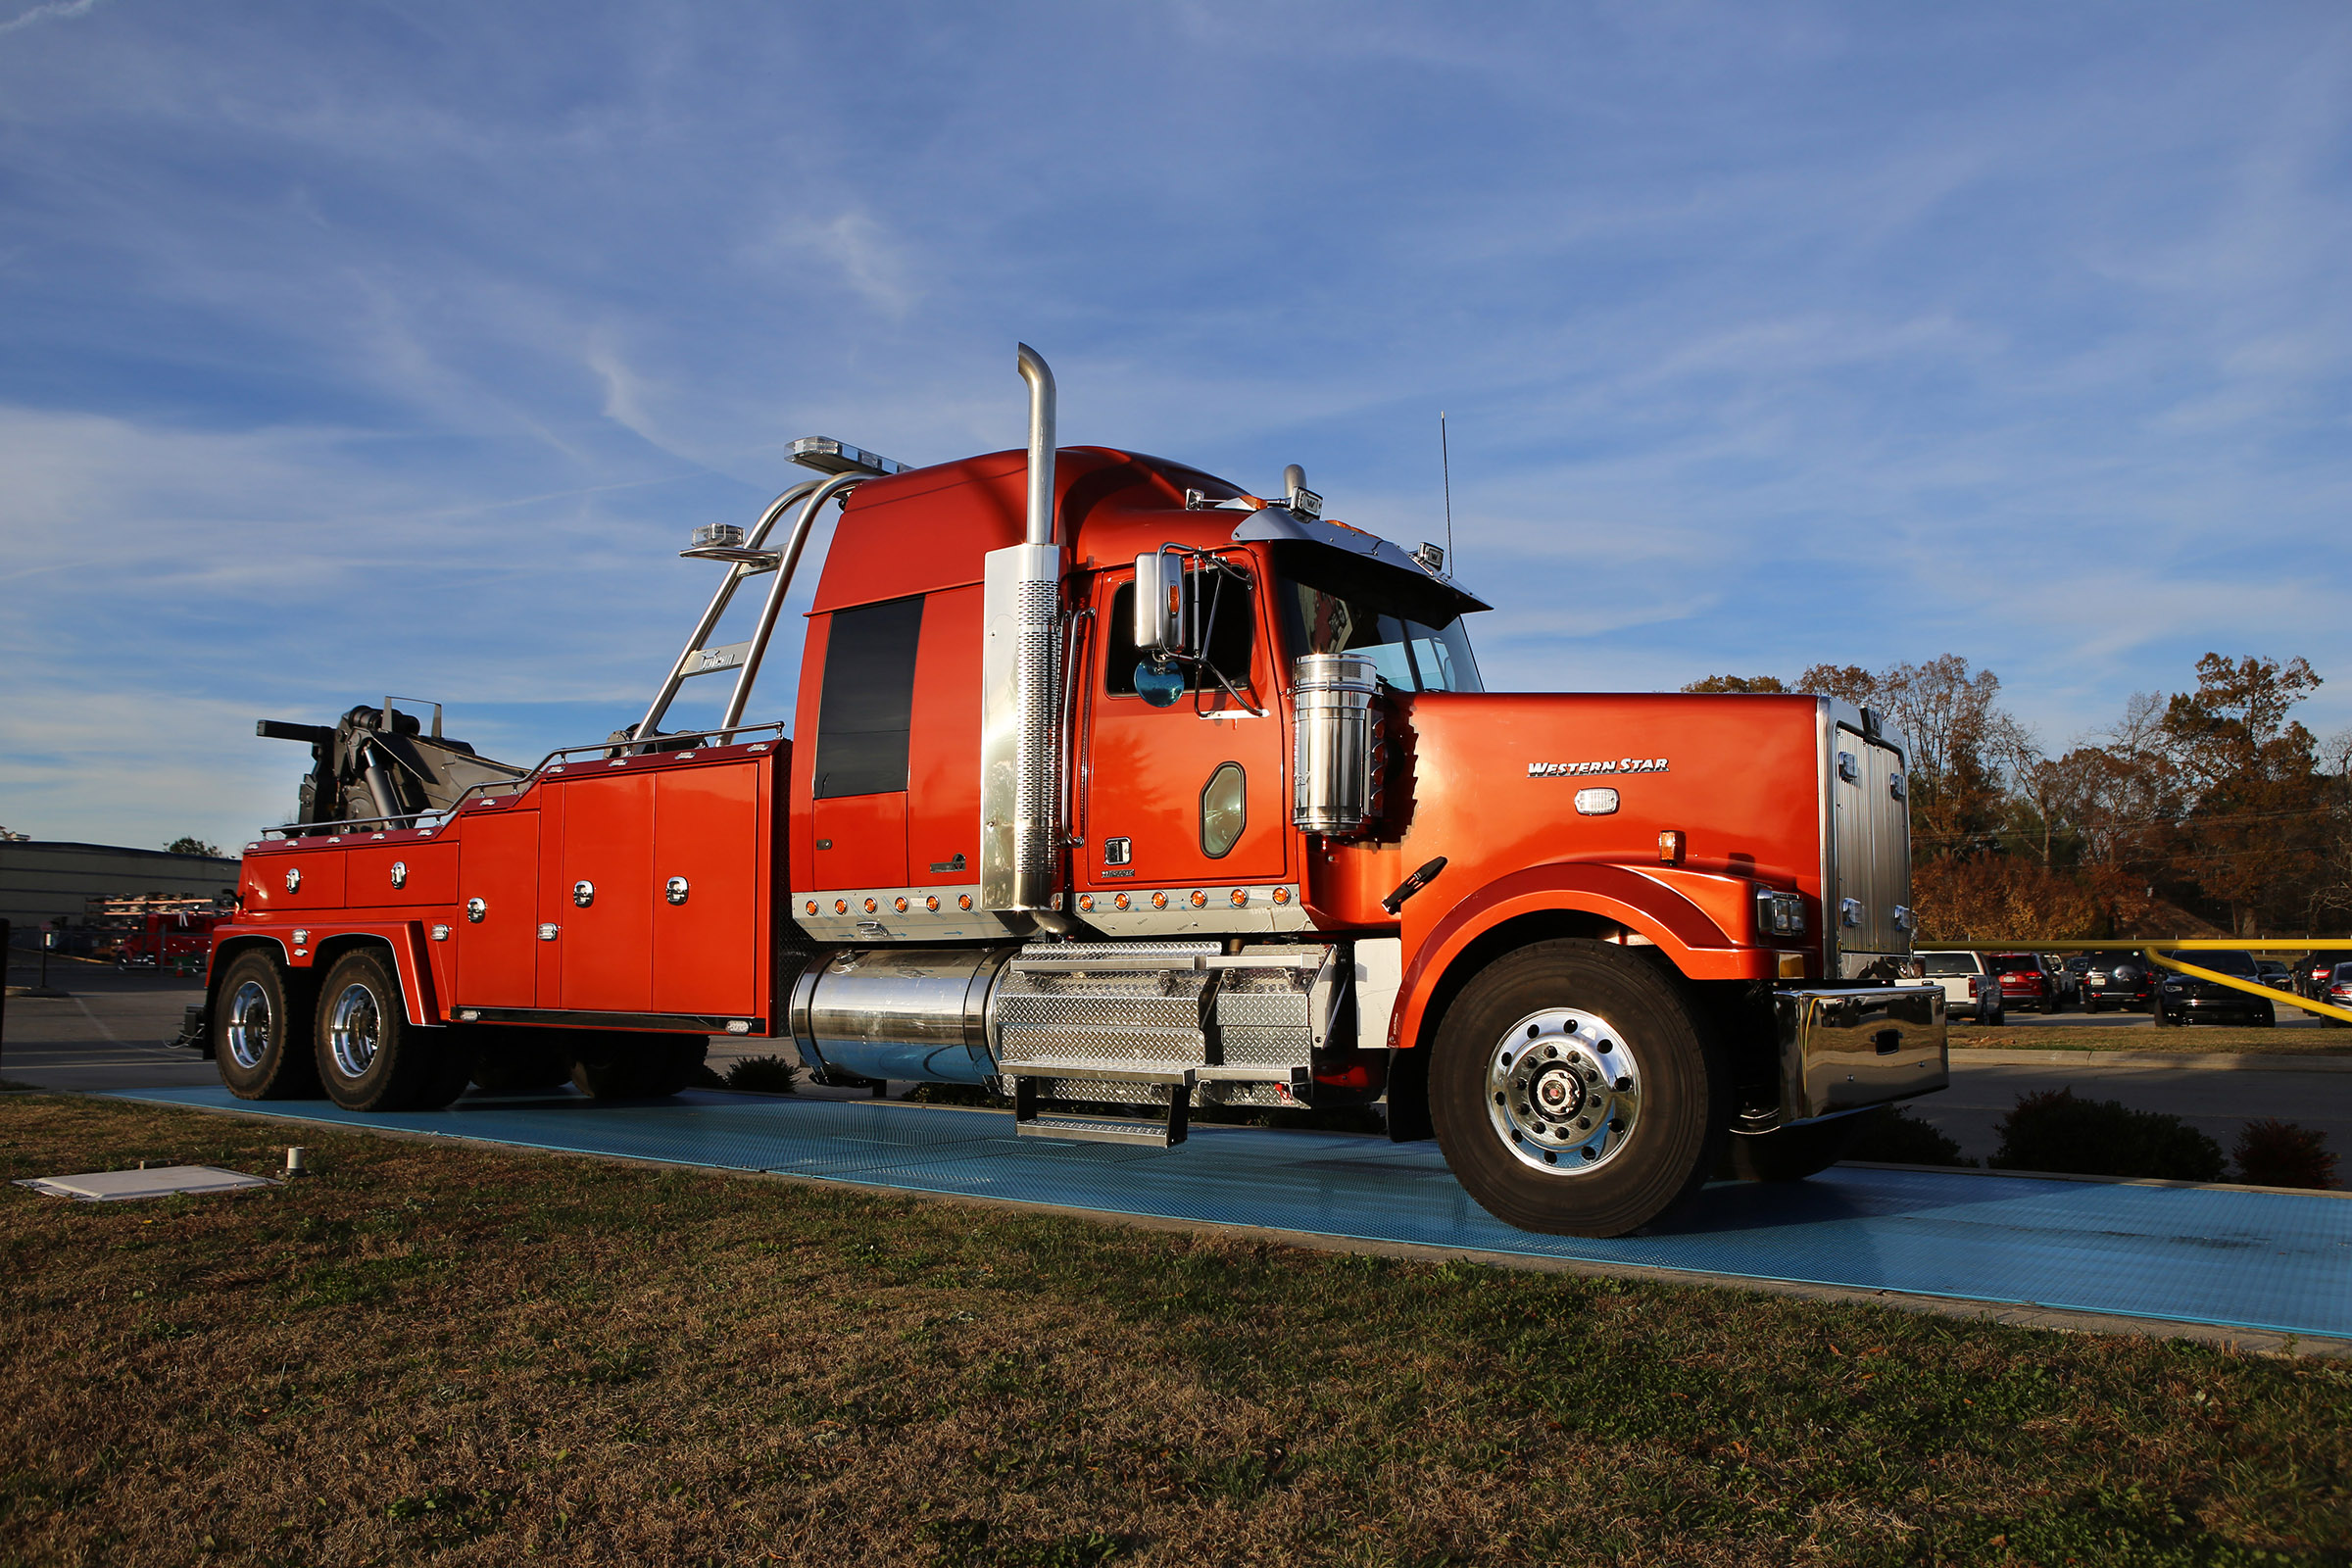 GTS Tire & Towing, Lincoln, NE / Vulcan V-70  Western Star 4900 Chassis